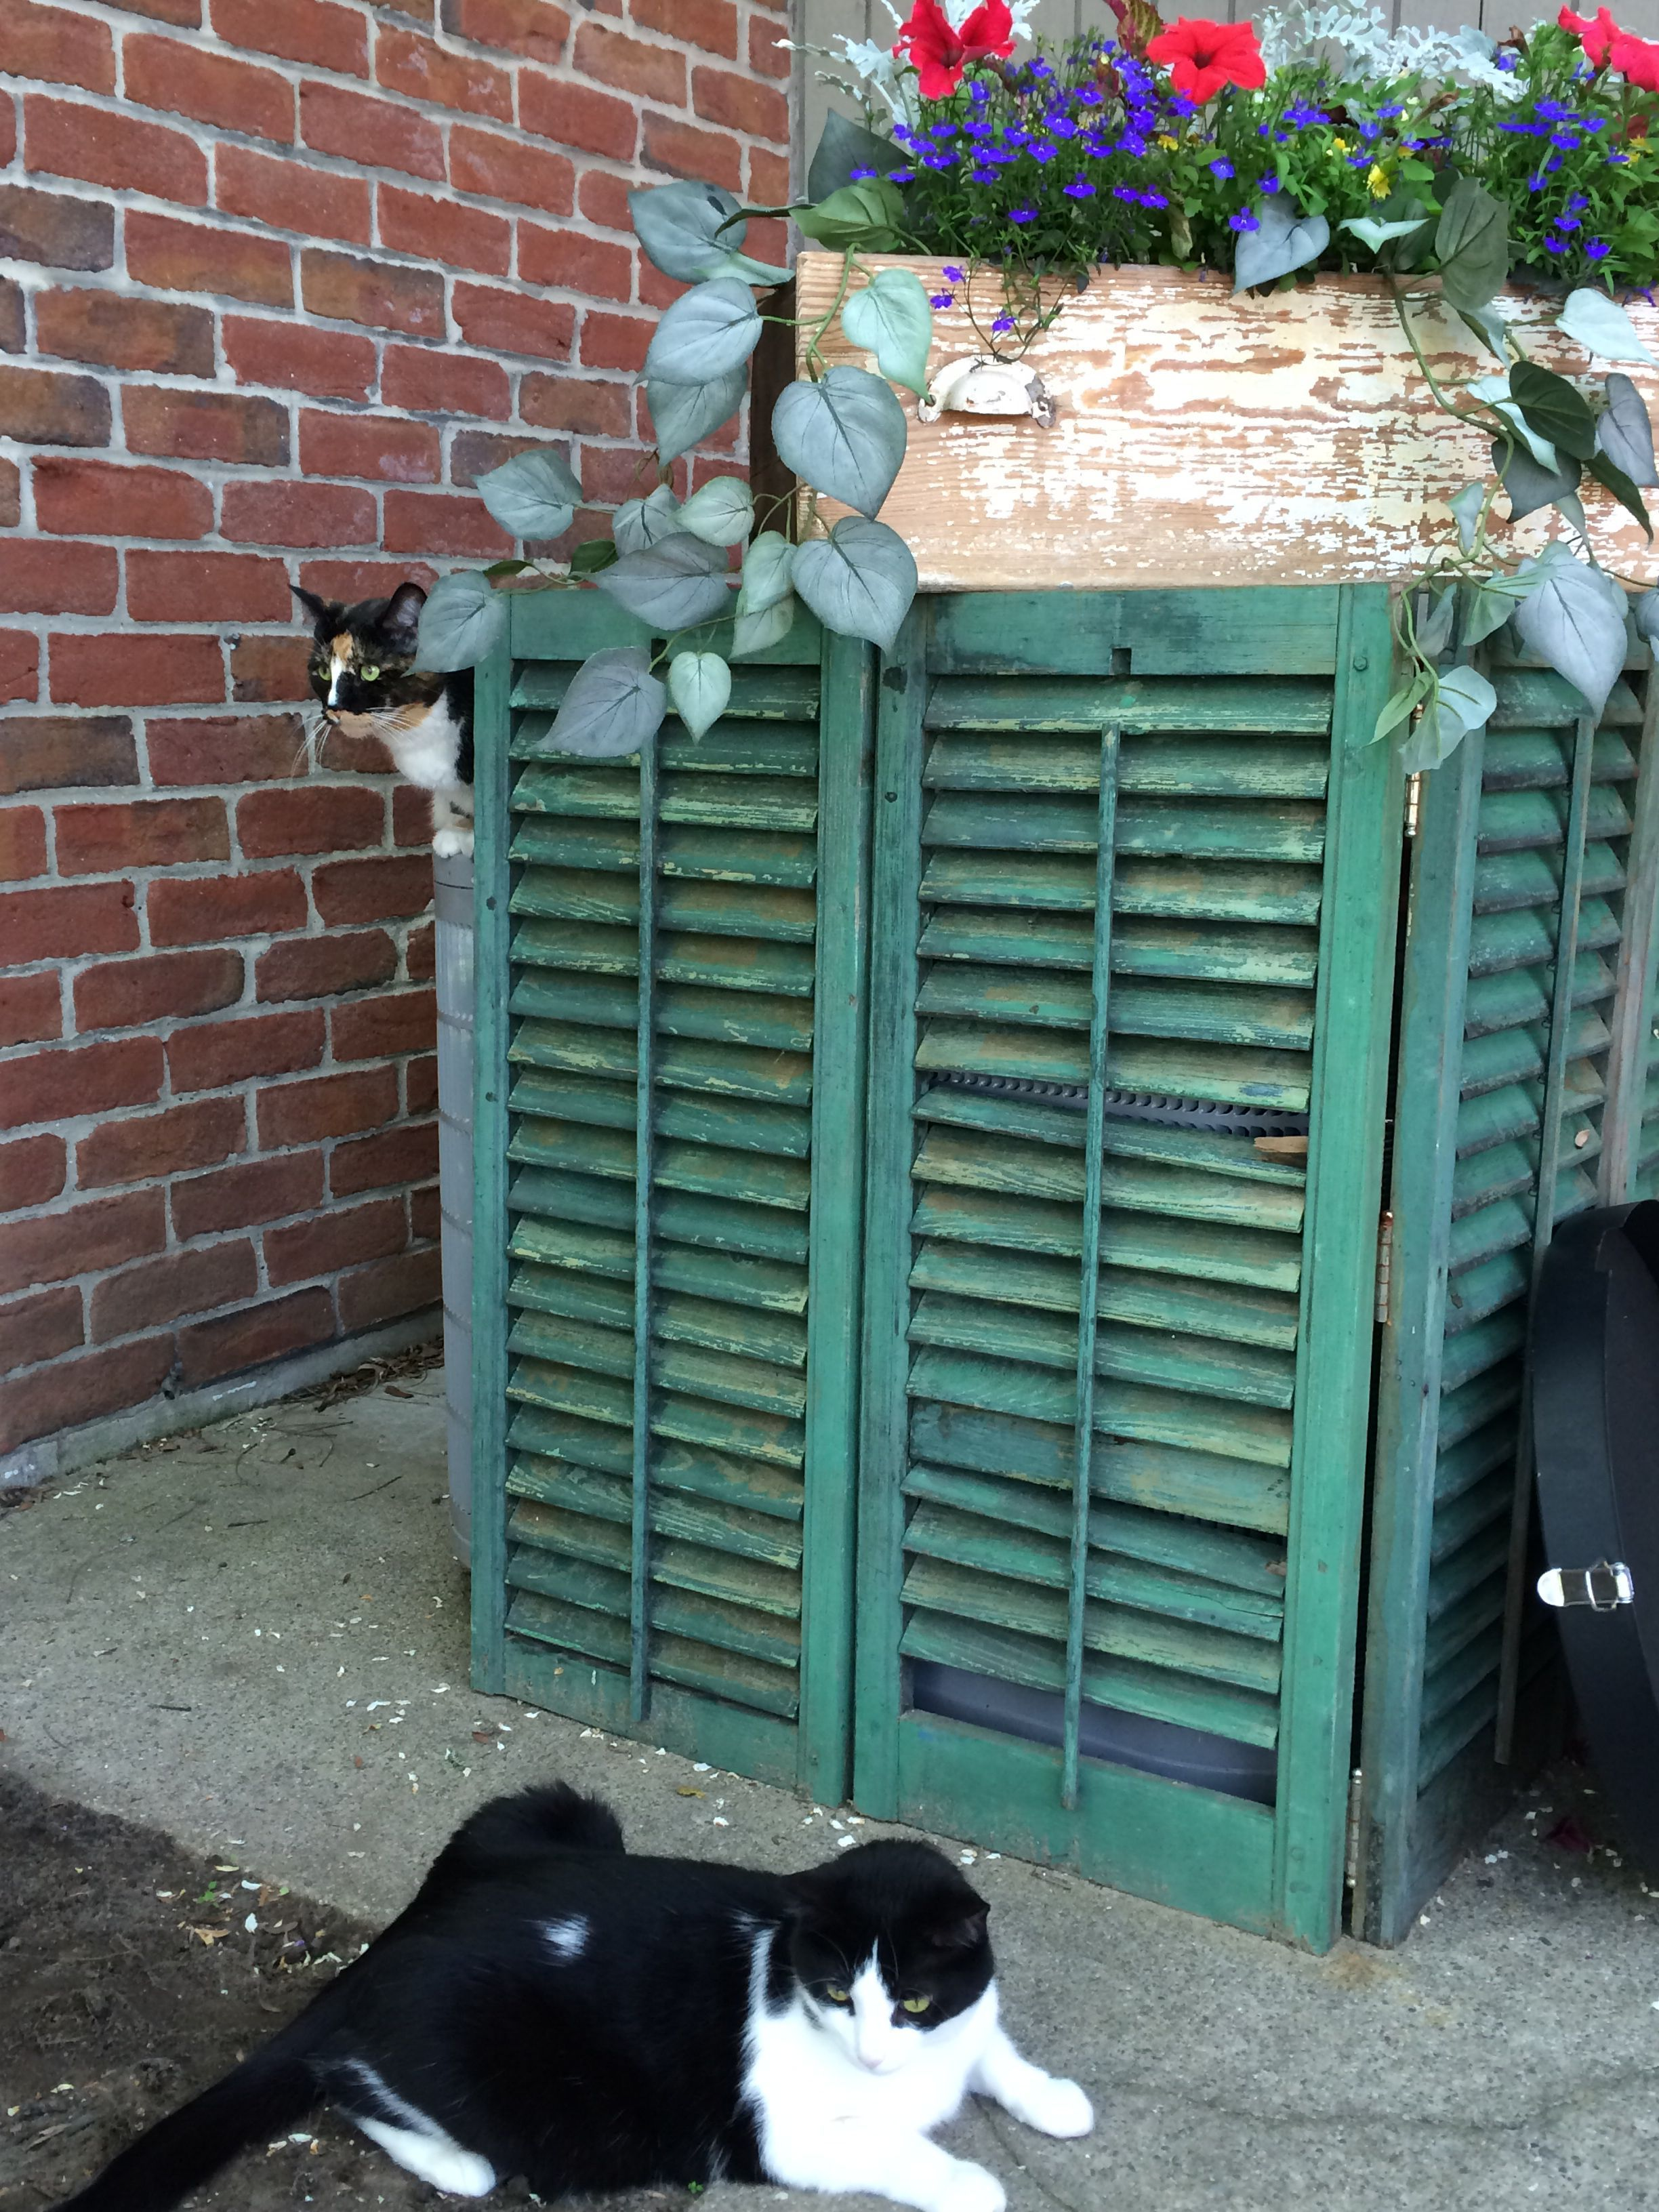 25 Challenging Air Conditioner Fence Air conditioner